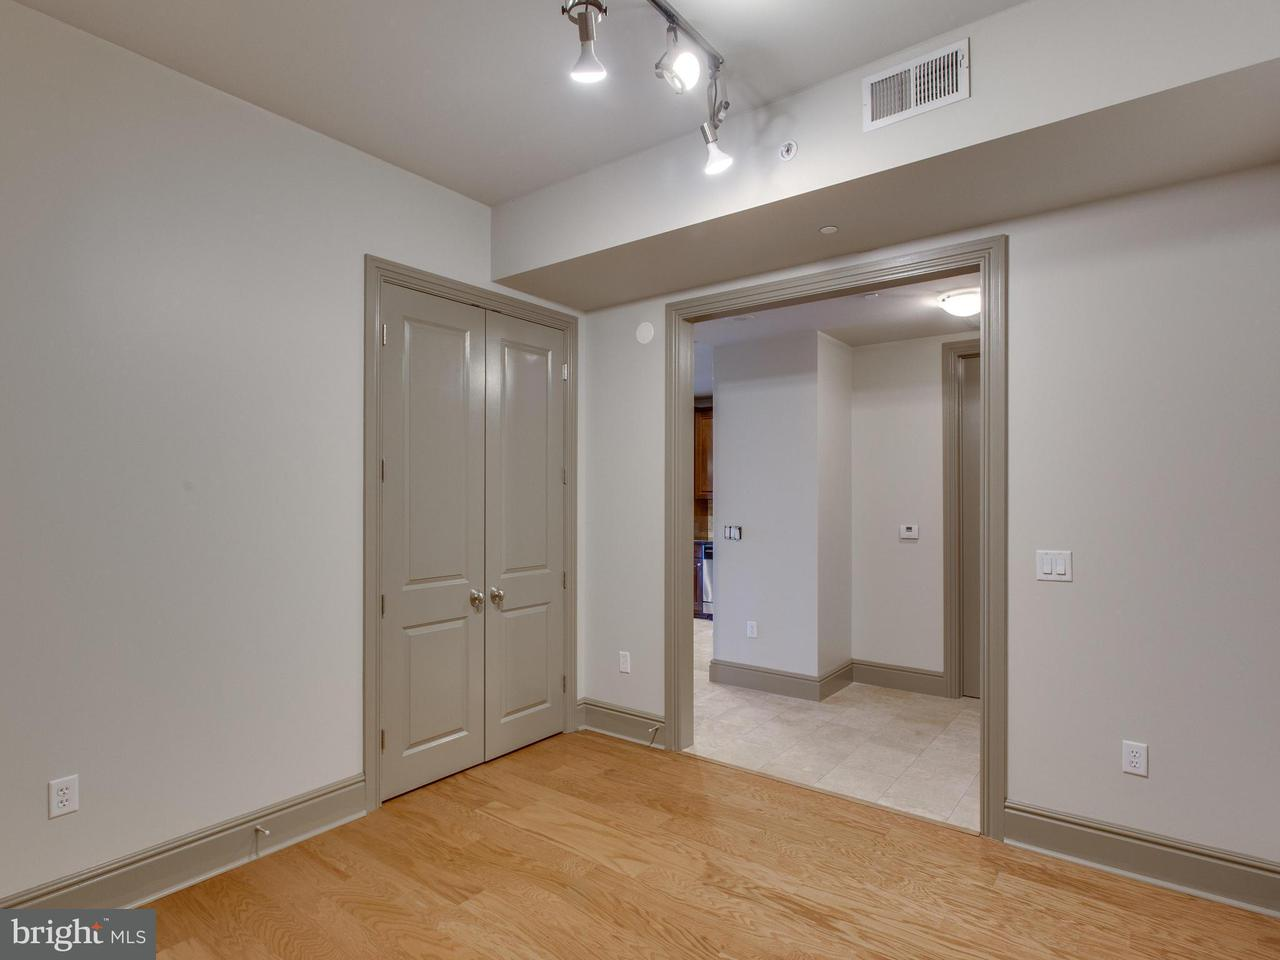 Additional photo for property listing at 750 3rd St NW #703  Washington, District Of Columbia 20001 United States